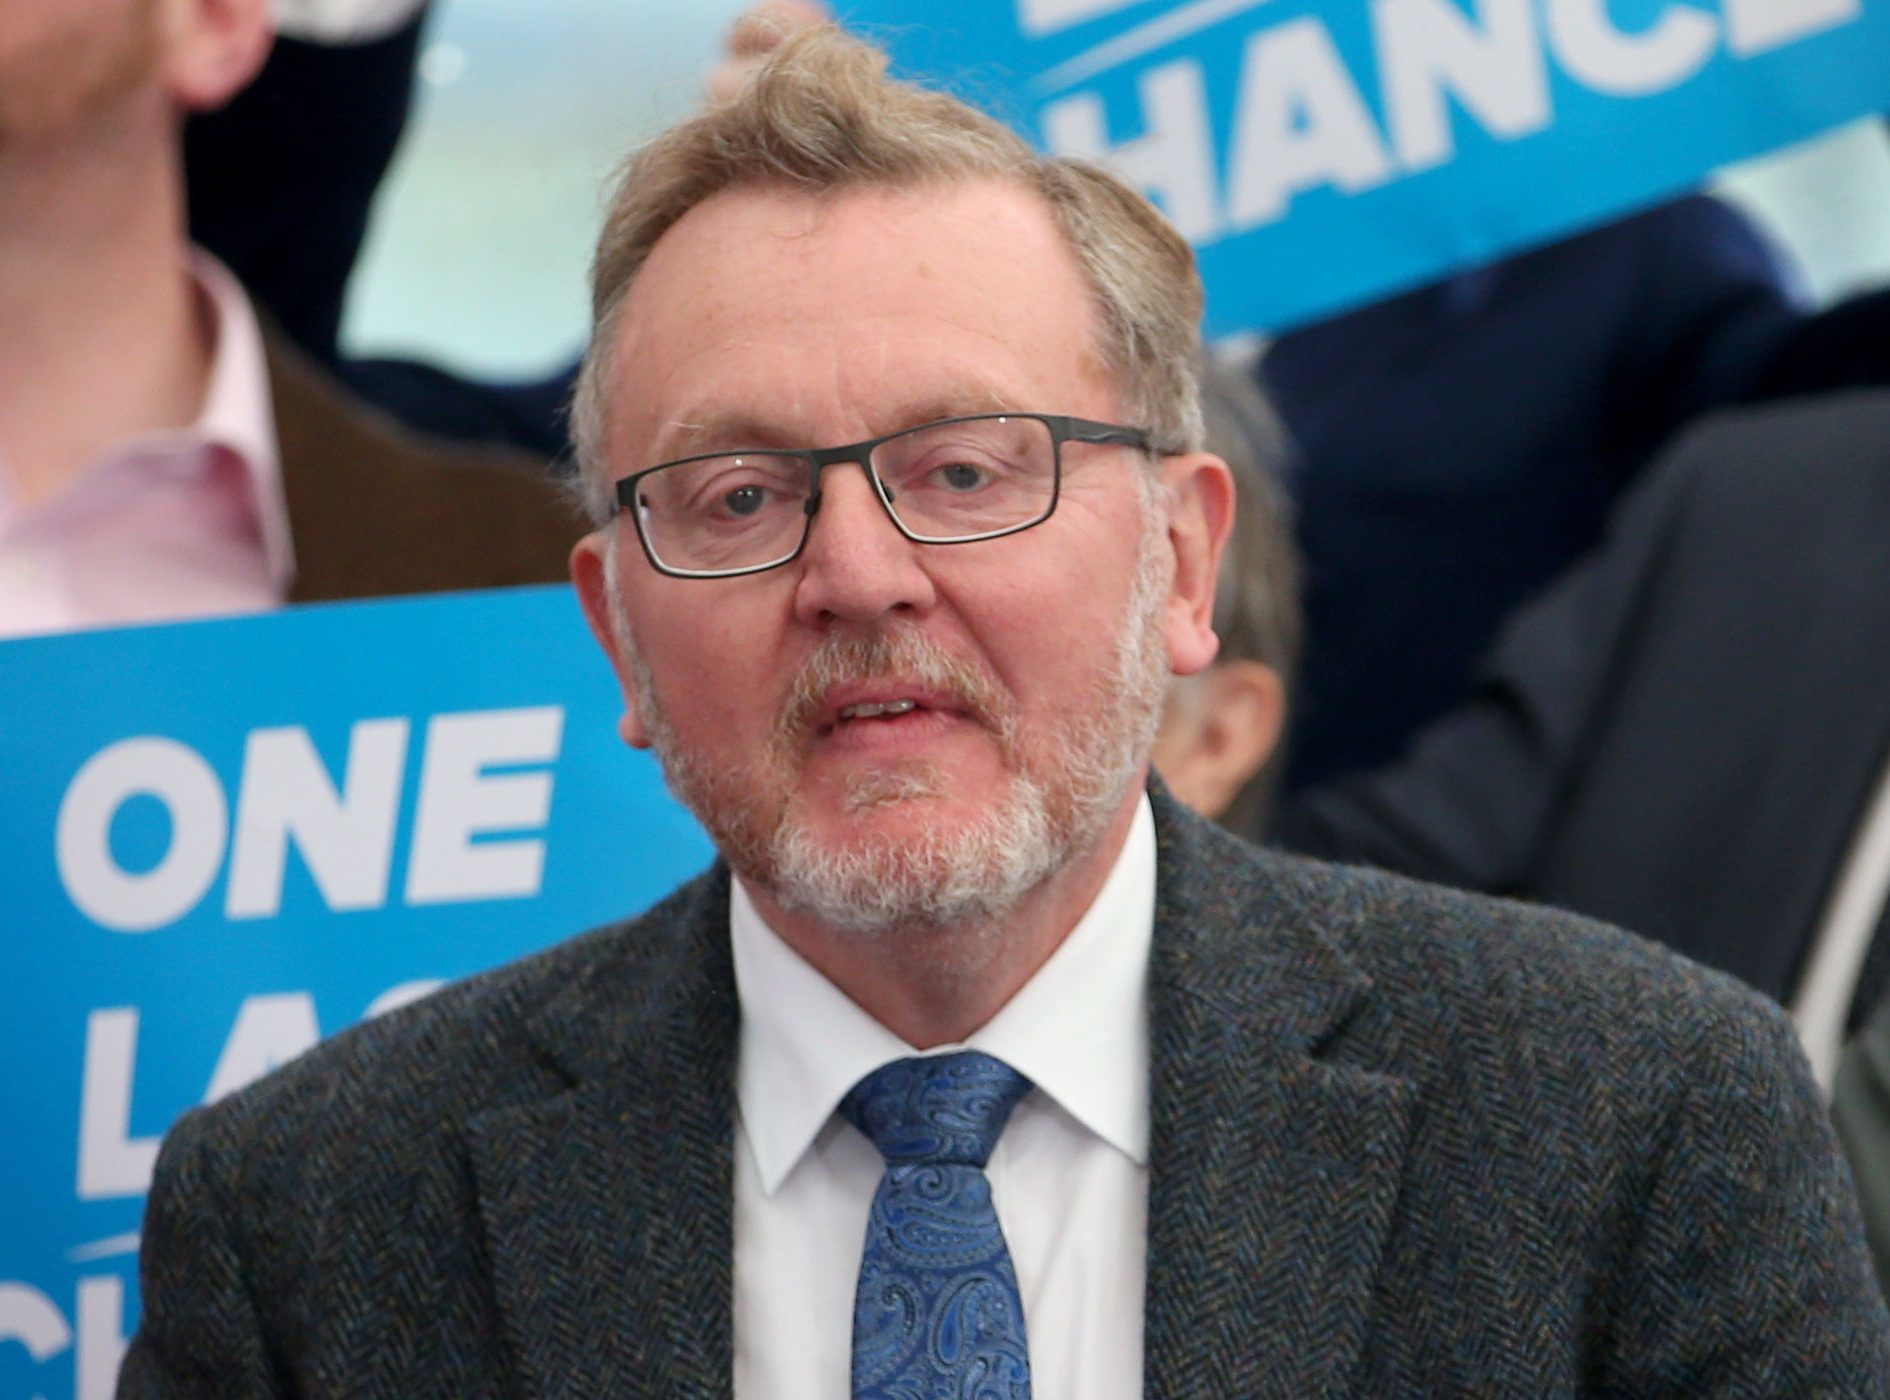 Scotland Secretary David Mundell ruled out a second Scottish independence referendum in the next five years if the Tories win the General Election (Jane Barlow/PA Wire)